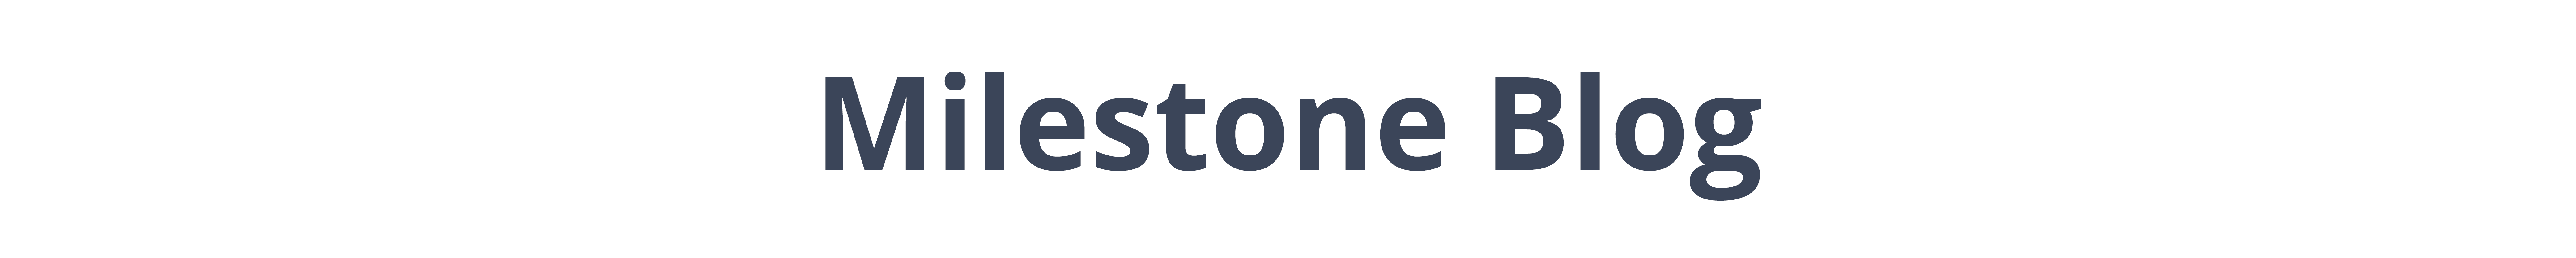 Milestone blog logo for Brookstone Assisted Living Community in Fayetteville, Arkansas